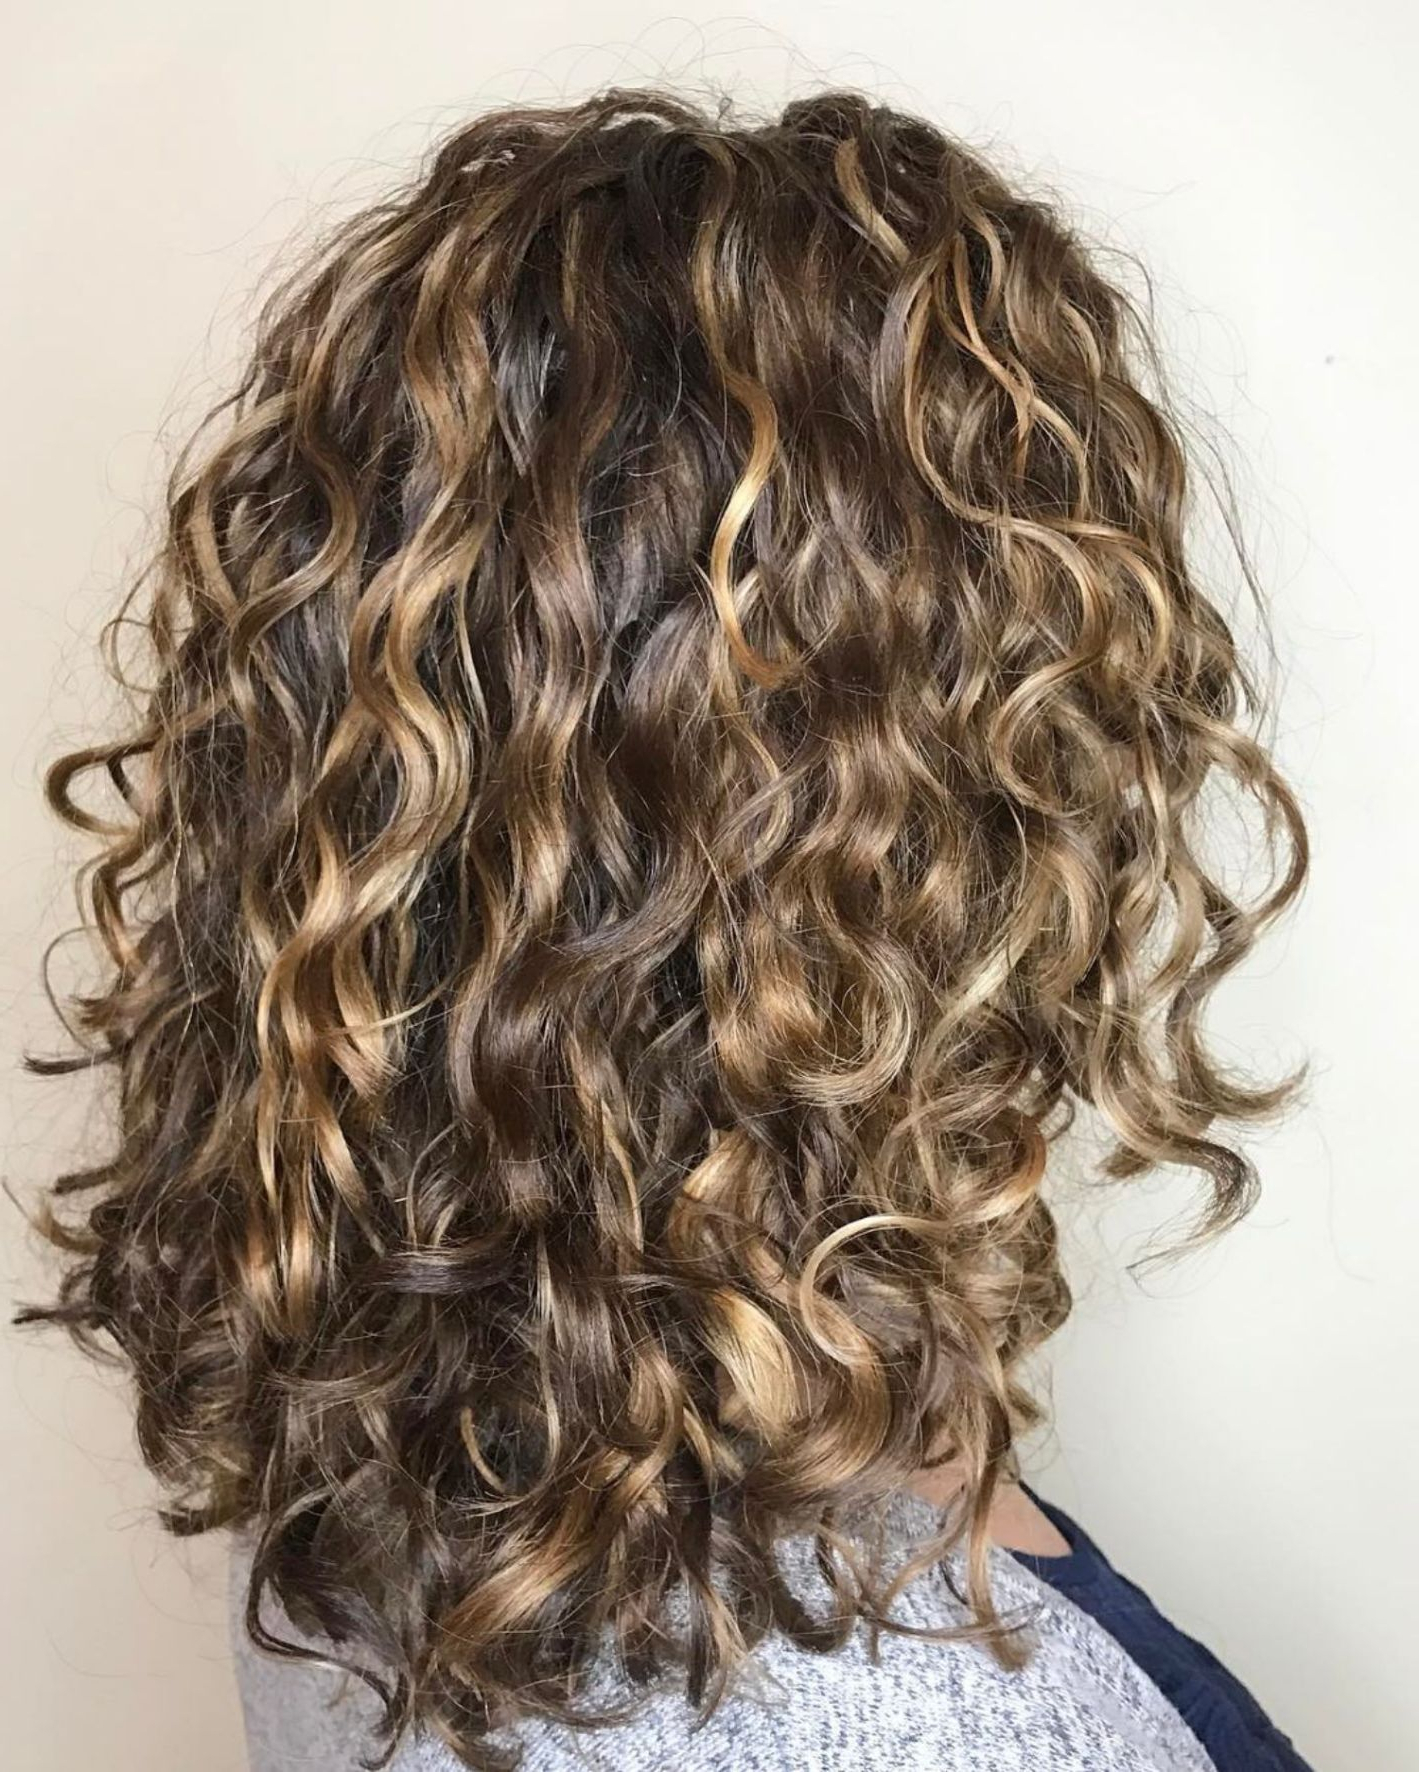 60 Styles And Cuts For Naturally Curly Hair | Hairstyles | Pinterest In Brown Curly Hairstyles With Highlights (View 1 of 20)